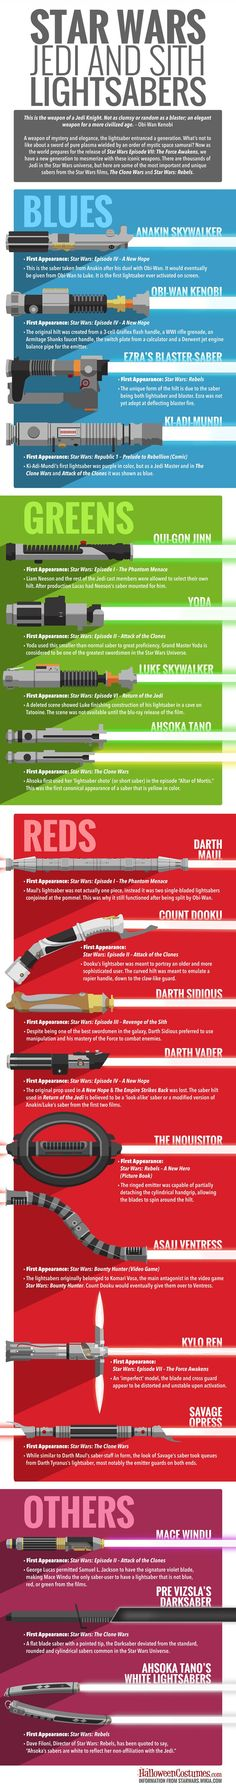 An Elegant Infographic For A More Civilized Age: A Look at STAR WARS Lightsabers #Lightsabers #StarWars #TheForceWithin #Jedi #Sith #Cliprr